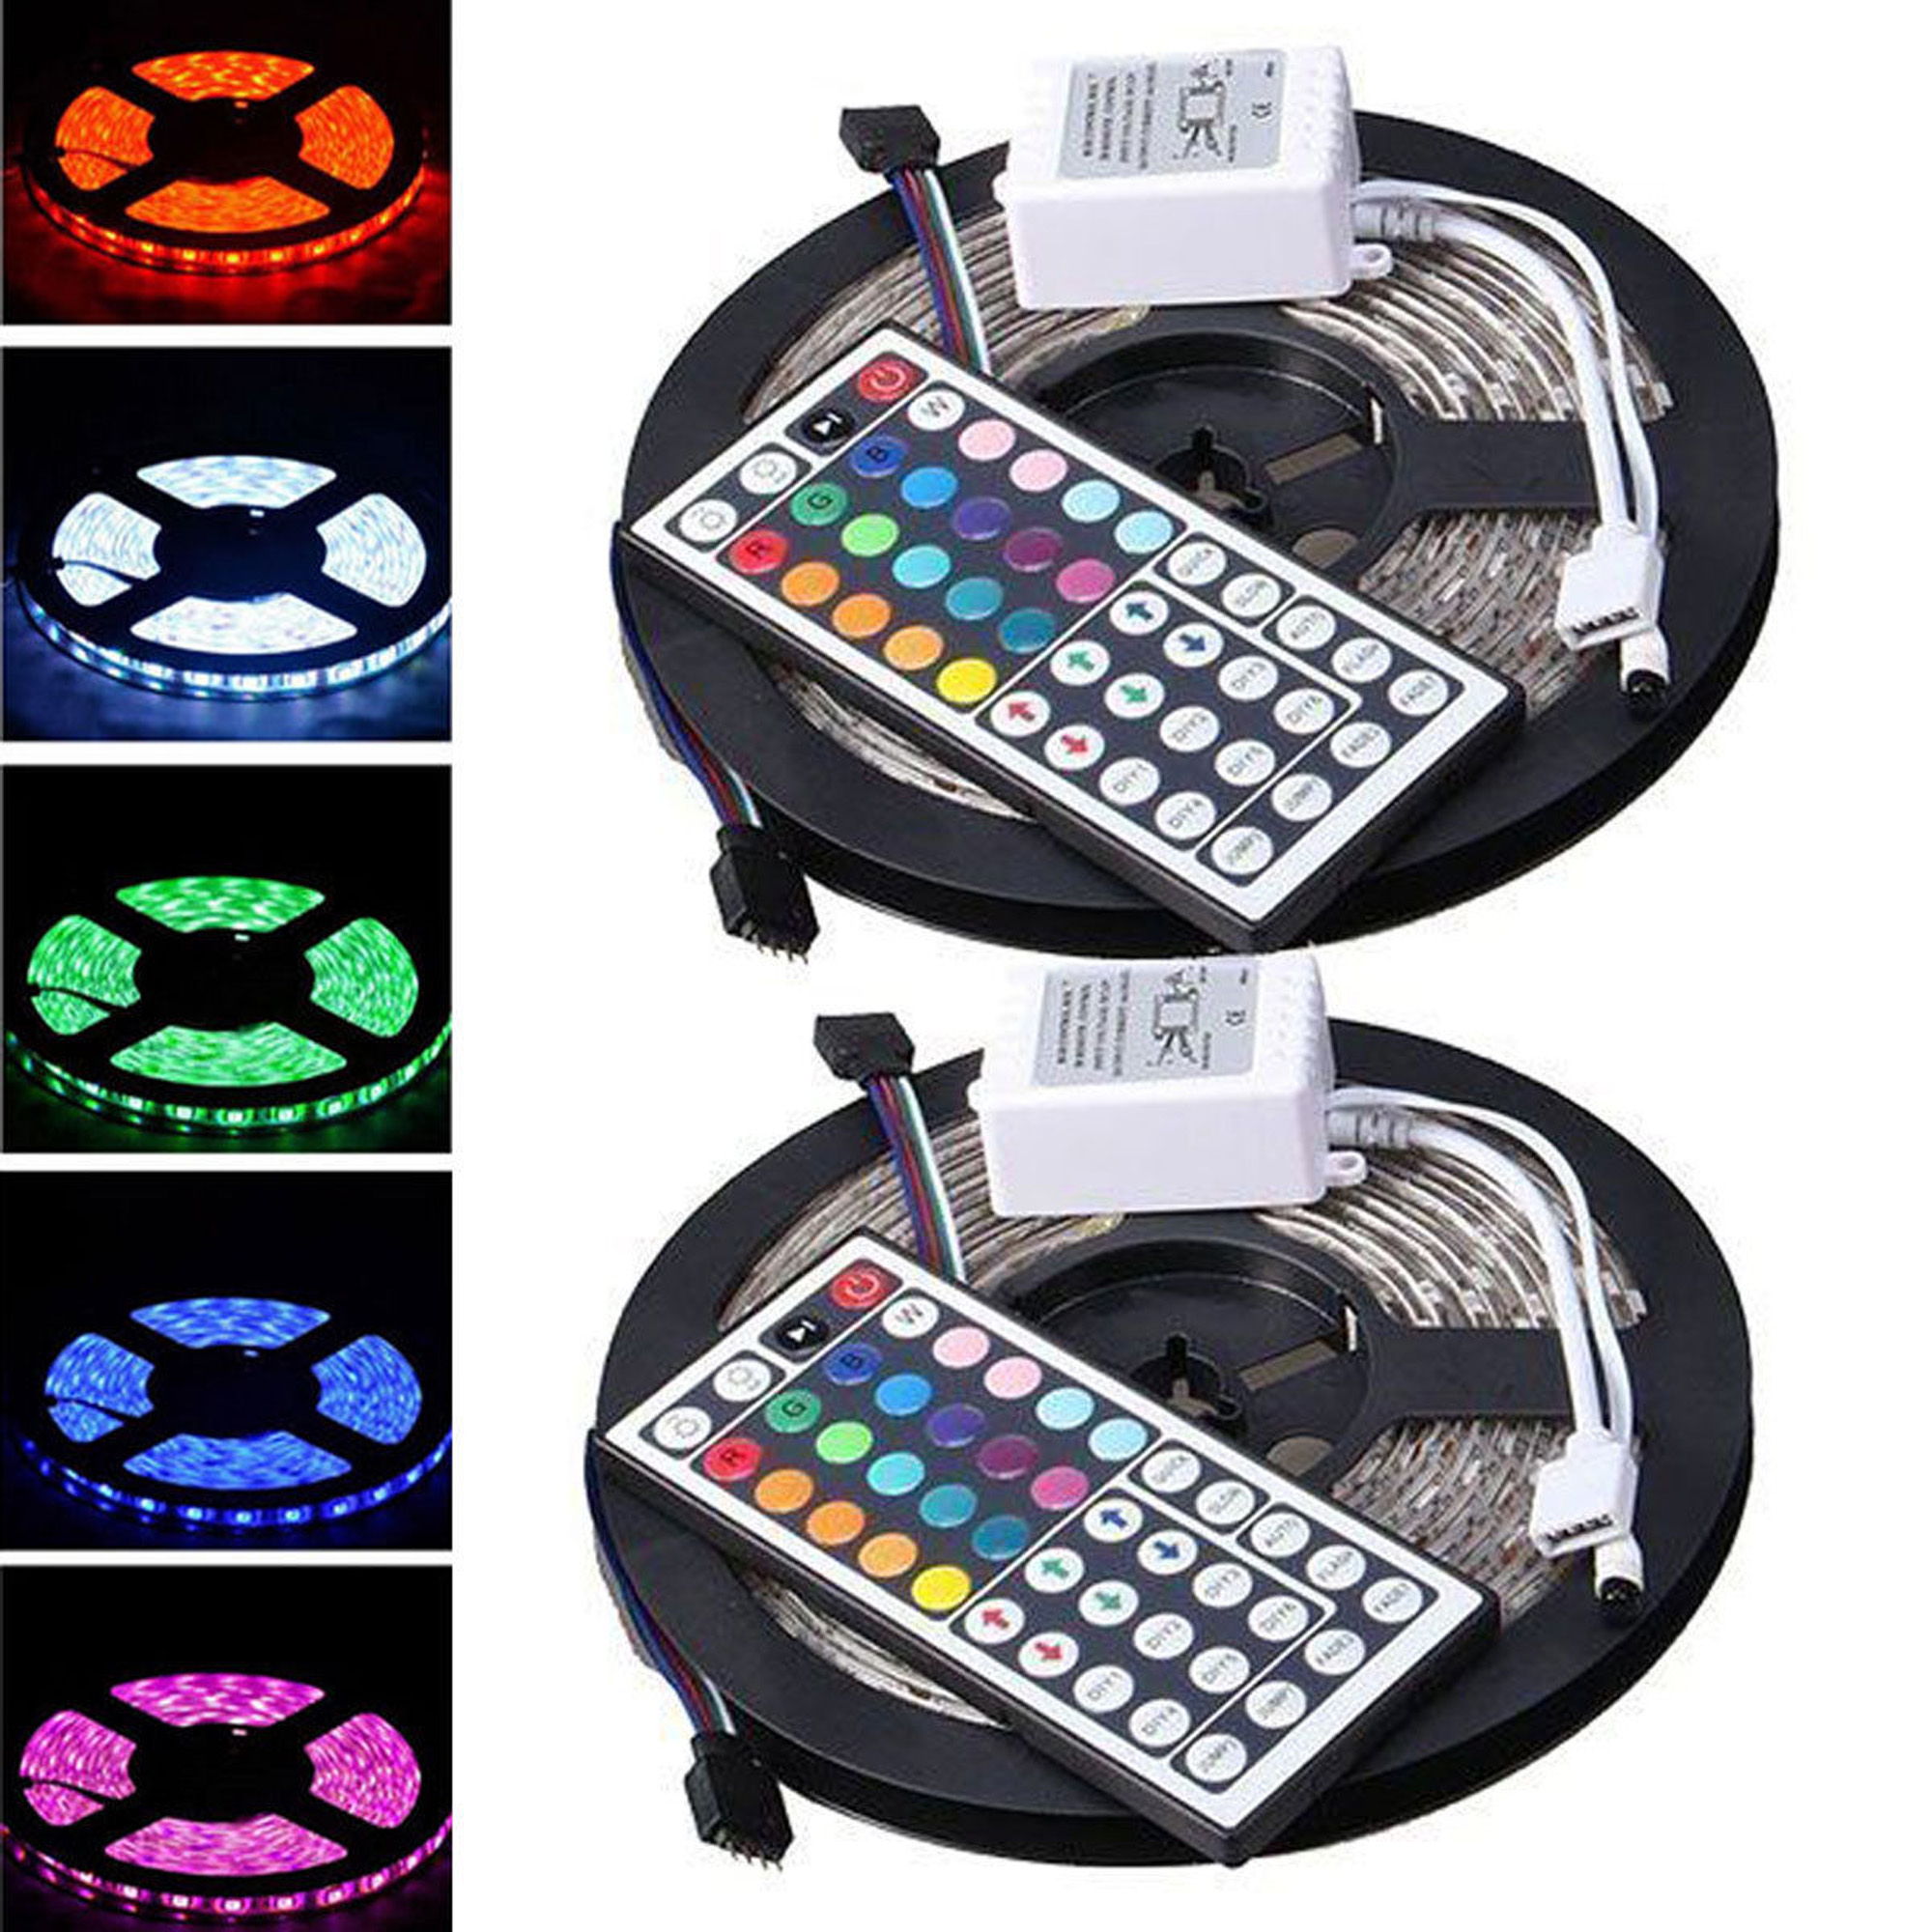 casung led strip lighting 25m 328 ft rgb 300leds flexible color changing lights